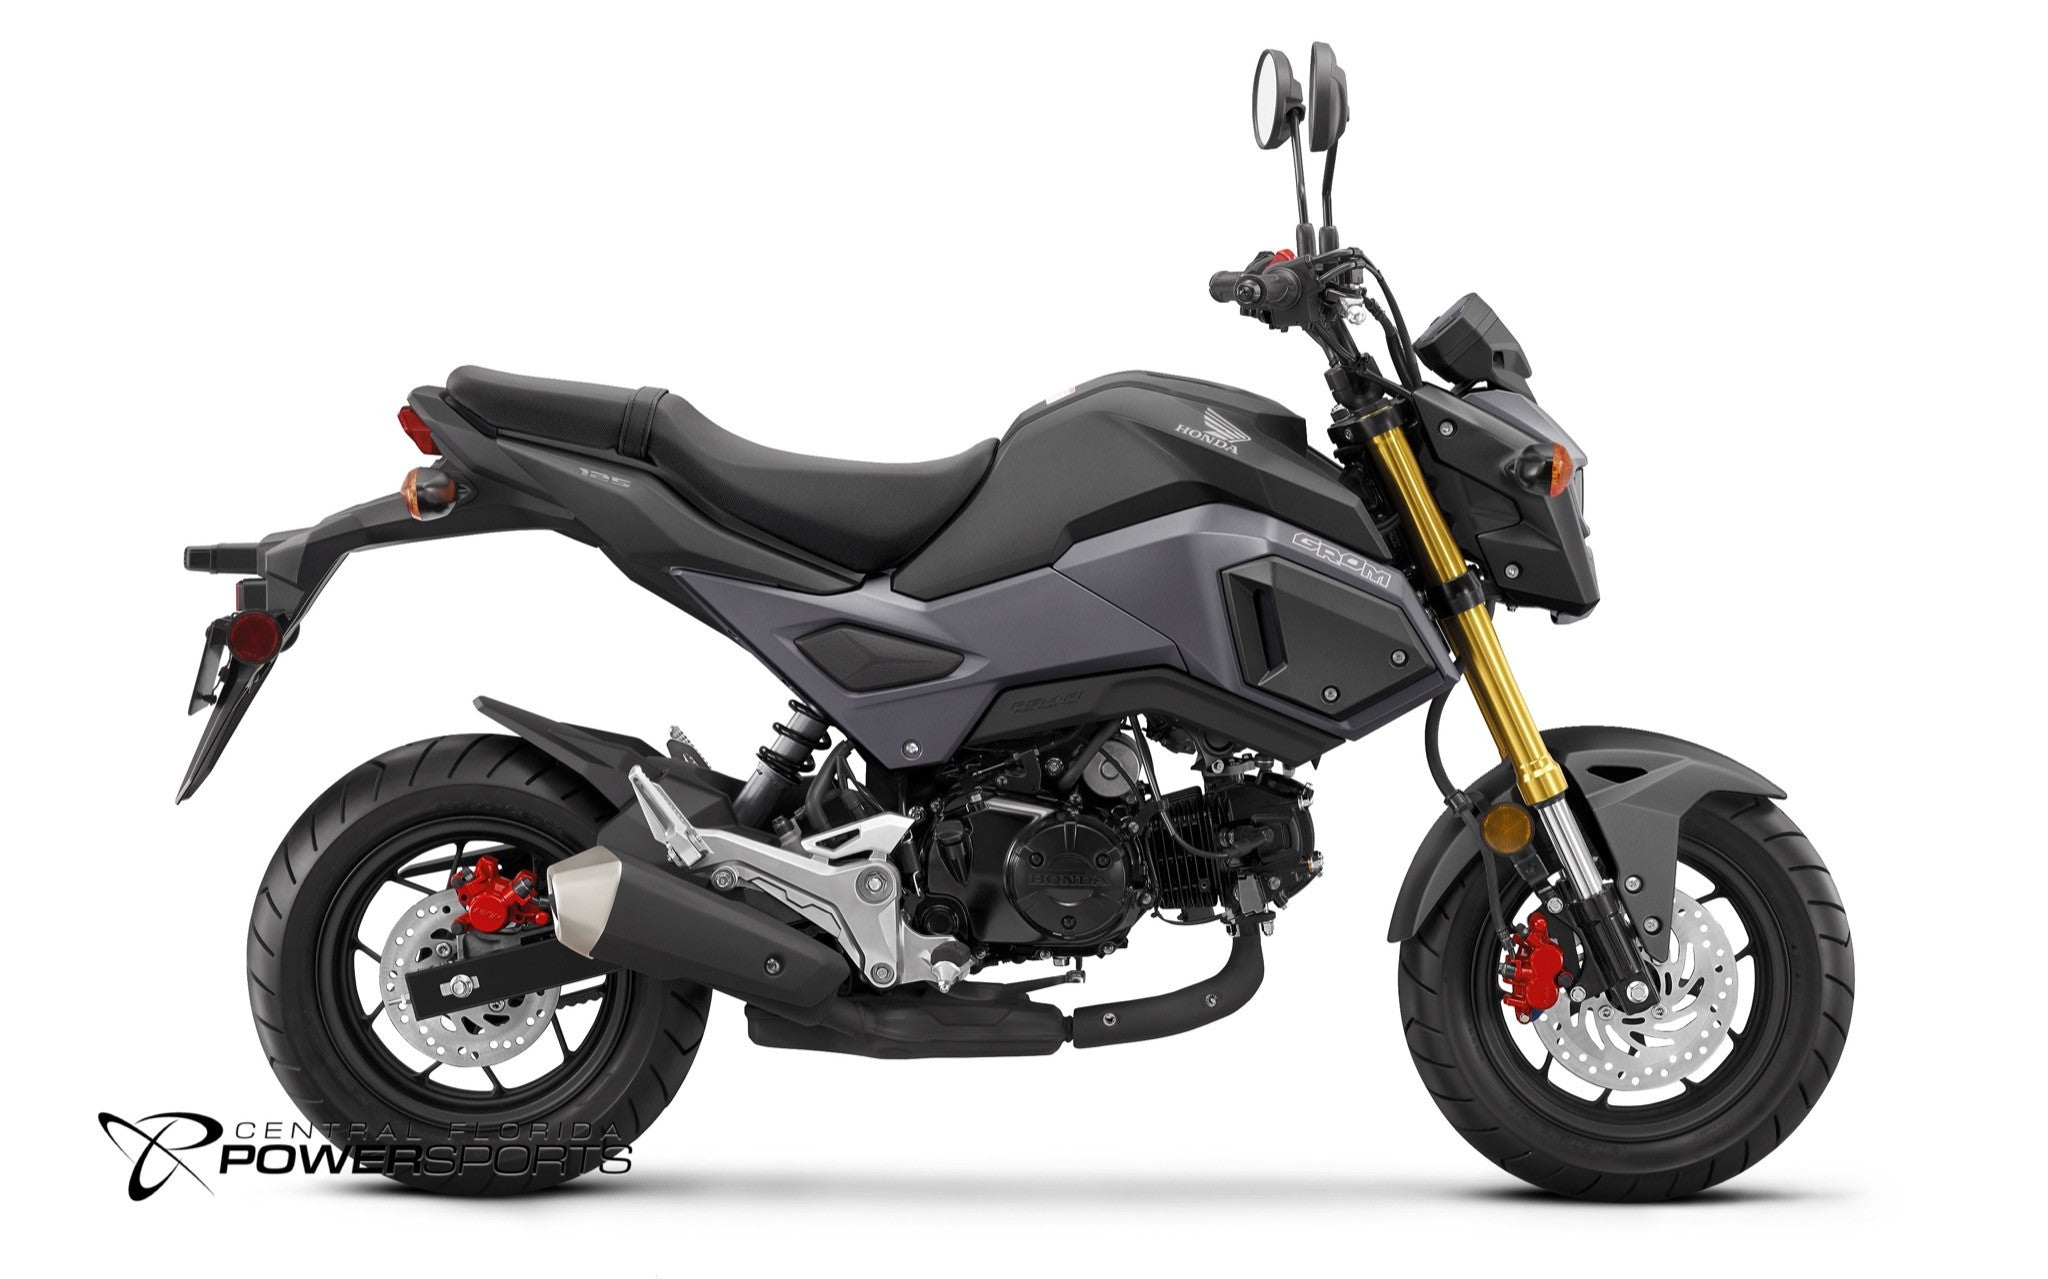 ... 2017 Honda Grom   Motorcycle For Sale   Central Florida PowerSports ...